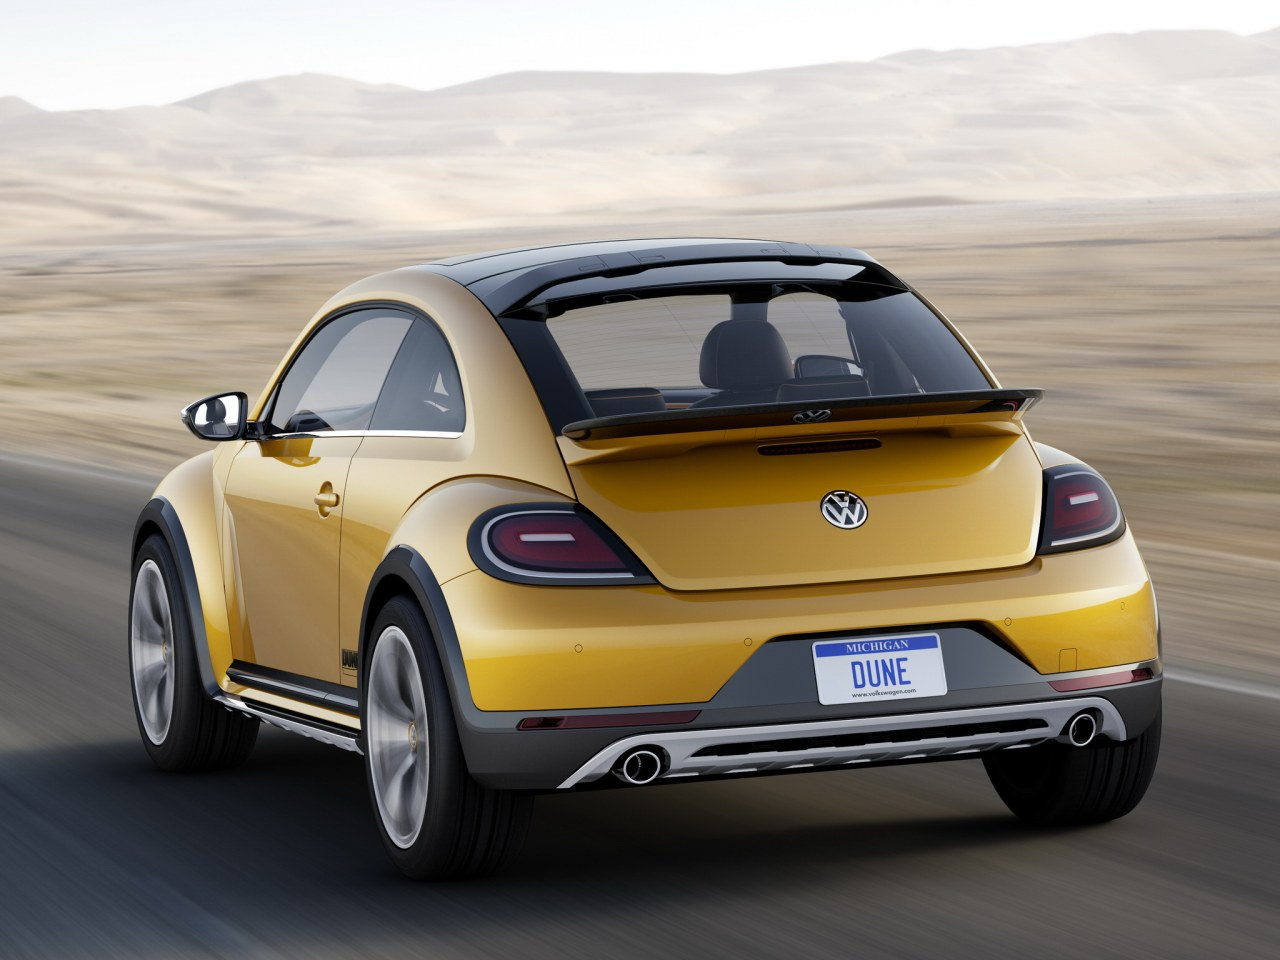 2014 Volkswagen Beetle Dune Concept photo - 1